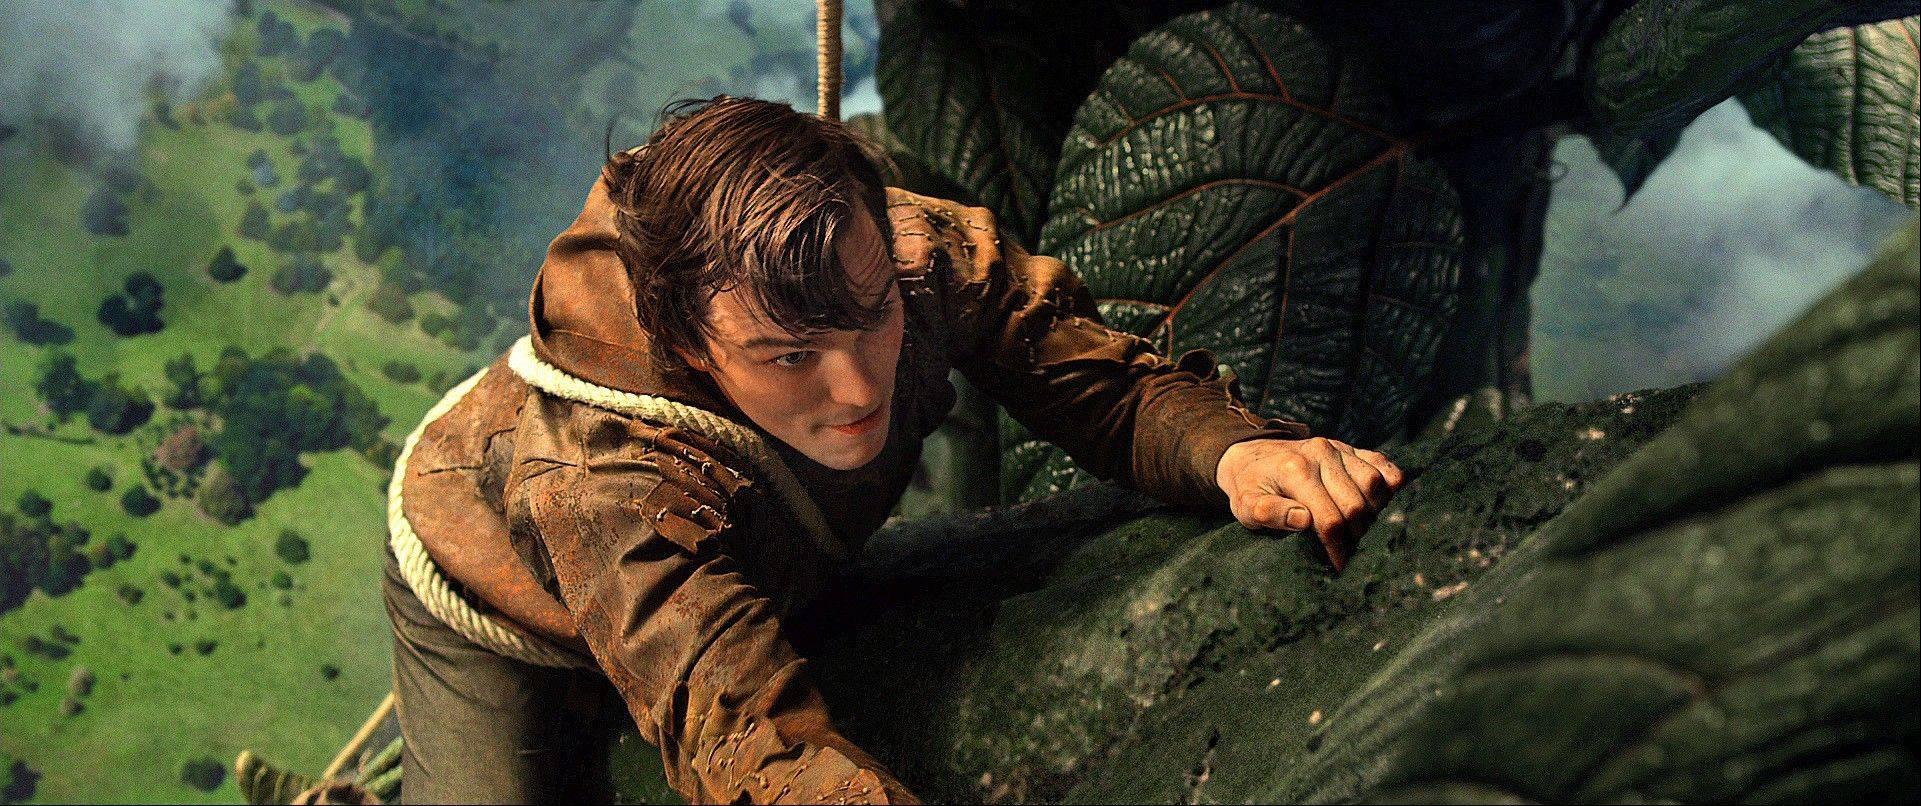 "This film image released by Warner Bros. Pictures shows Nicholas Hoult in a scene from ""Jack the Giant Slayer."" The 3-D film bowed at $28 million at the box office, which is a somewhat disappointing start for a film with a $200 million price tag."